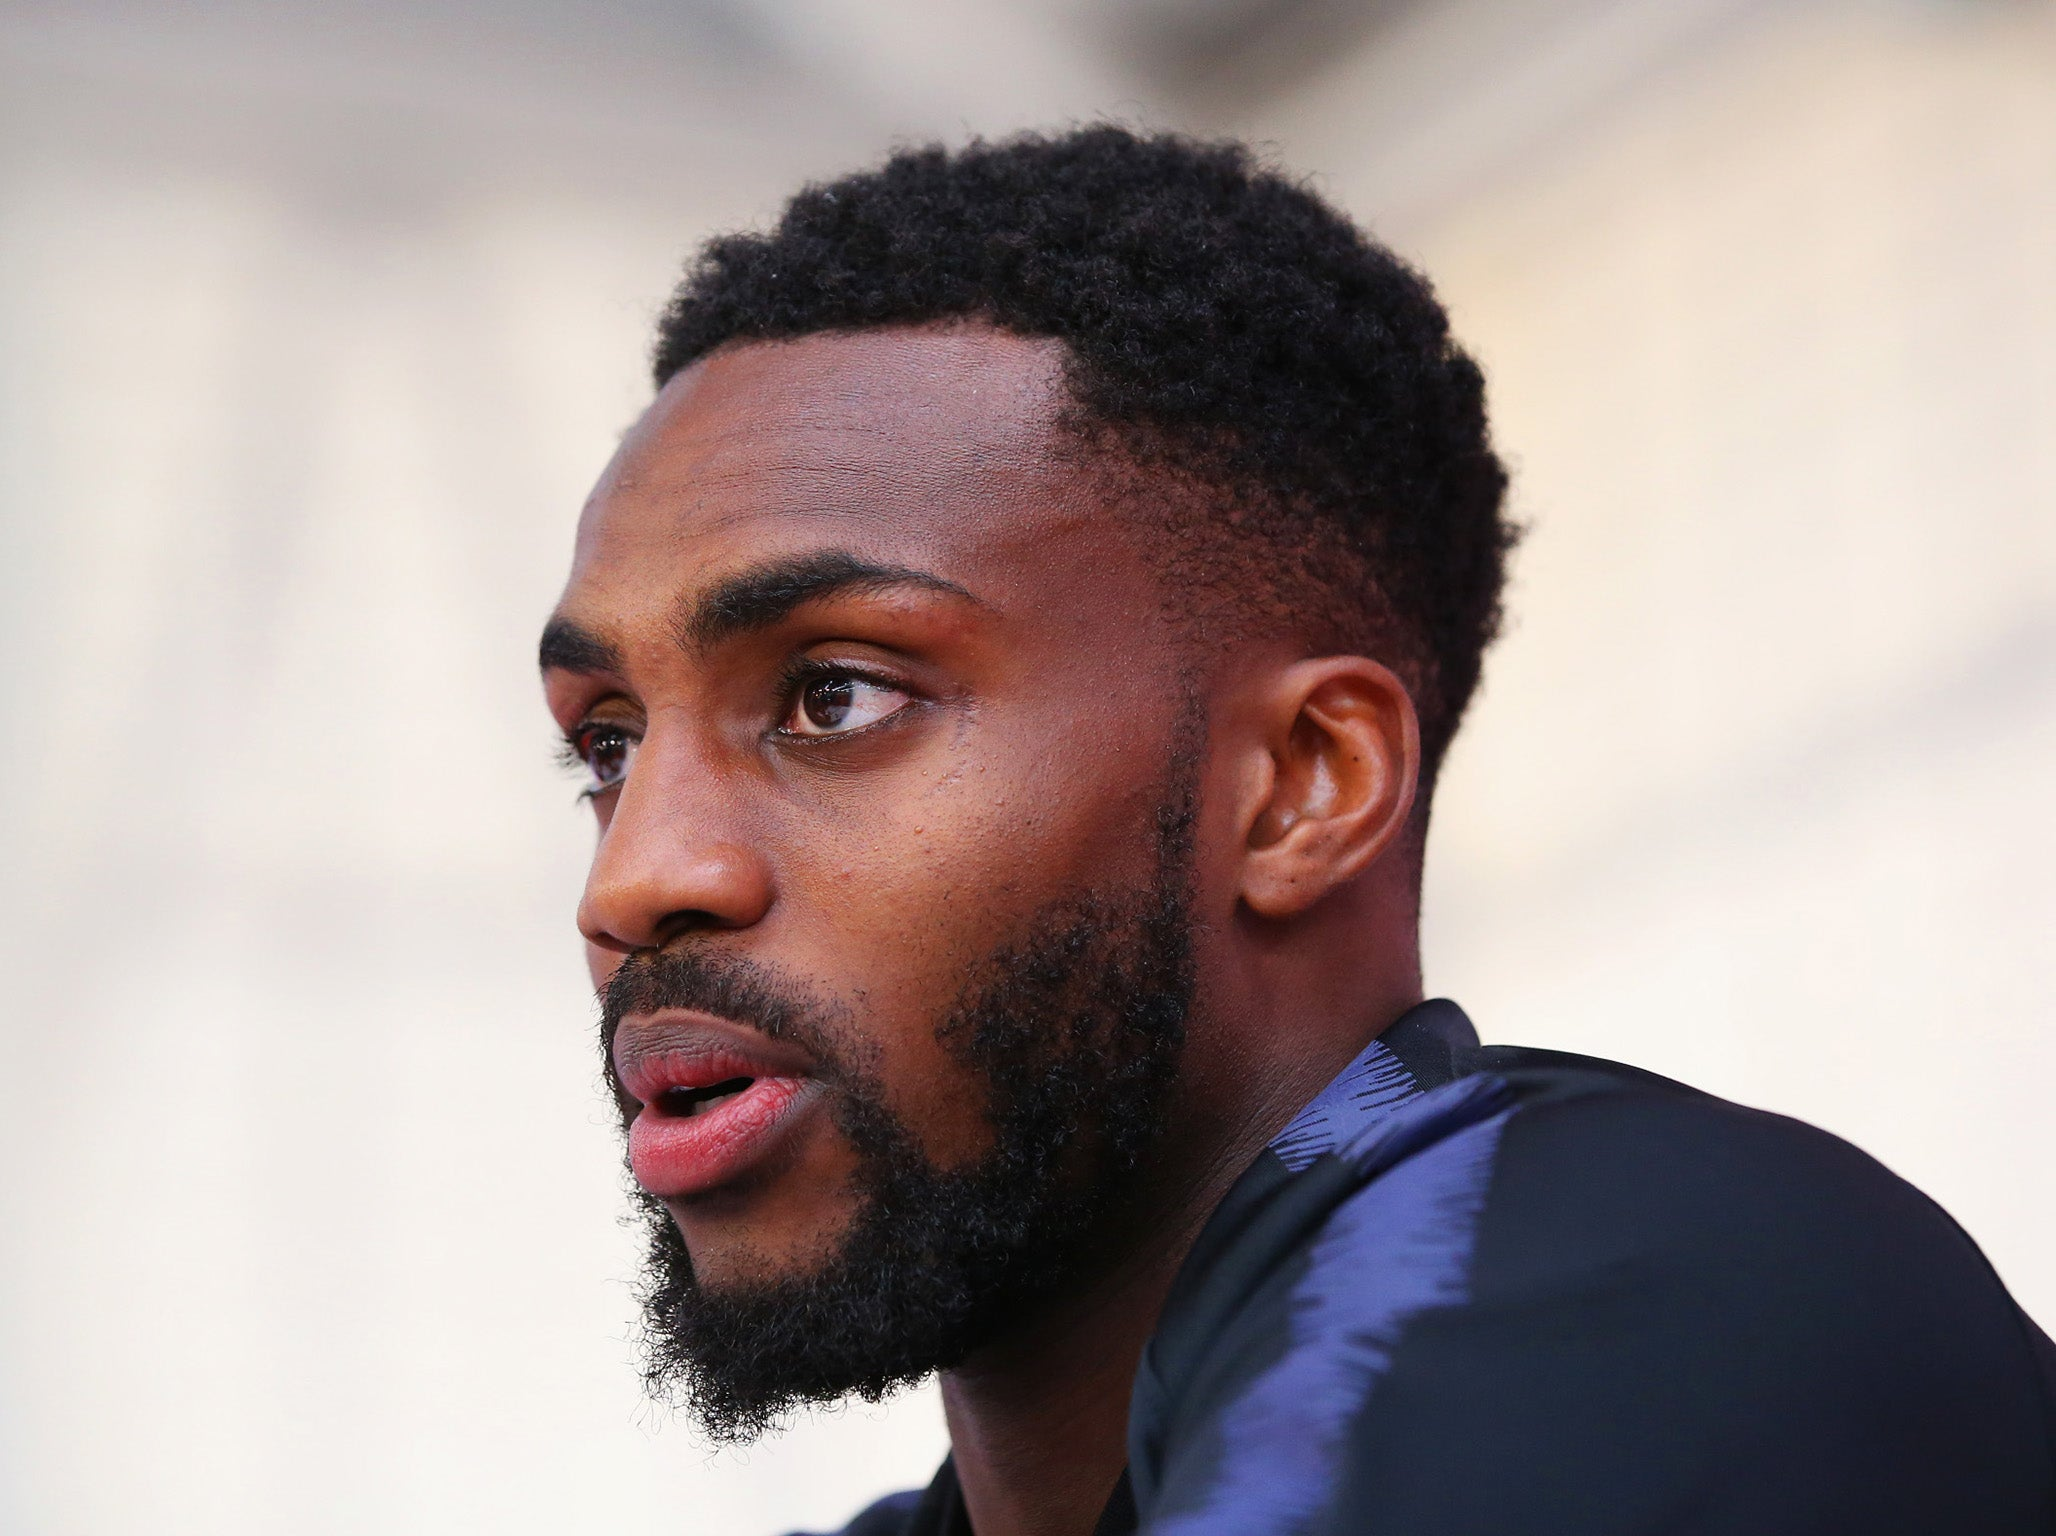 danny rose: england is my salvation from my battle with depression